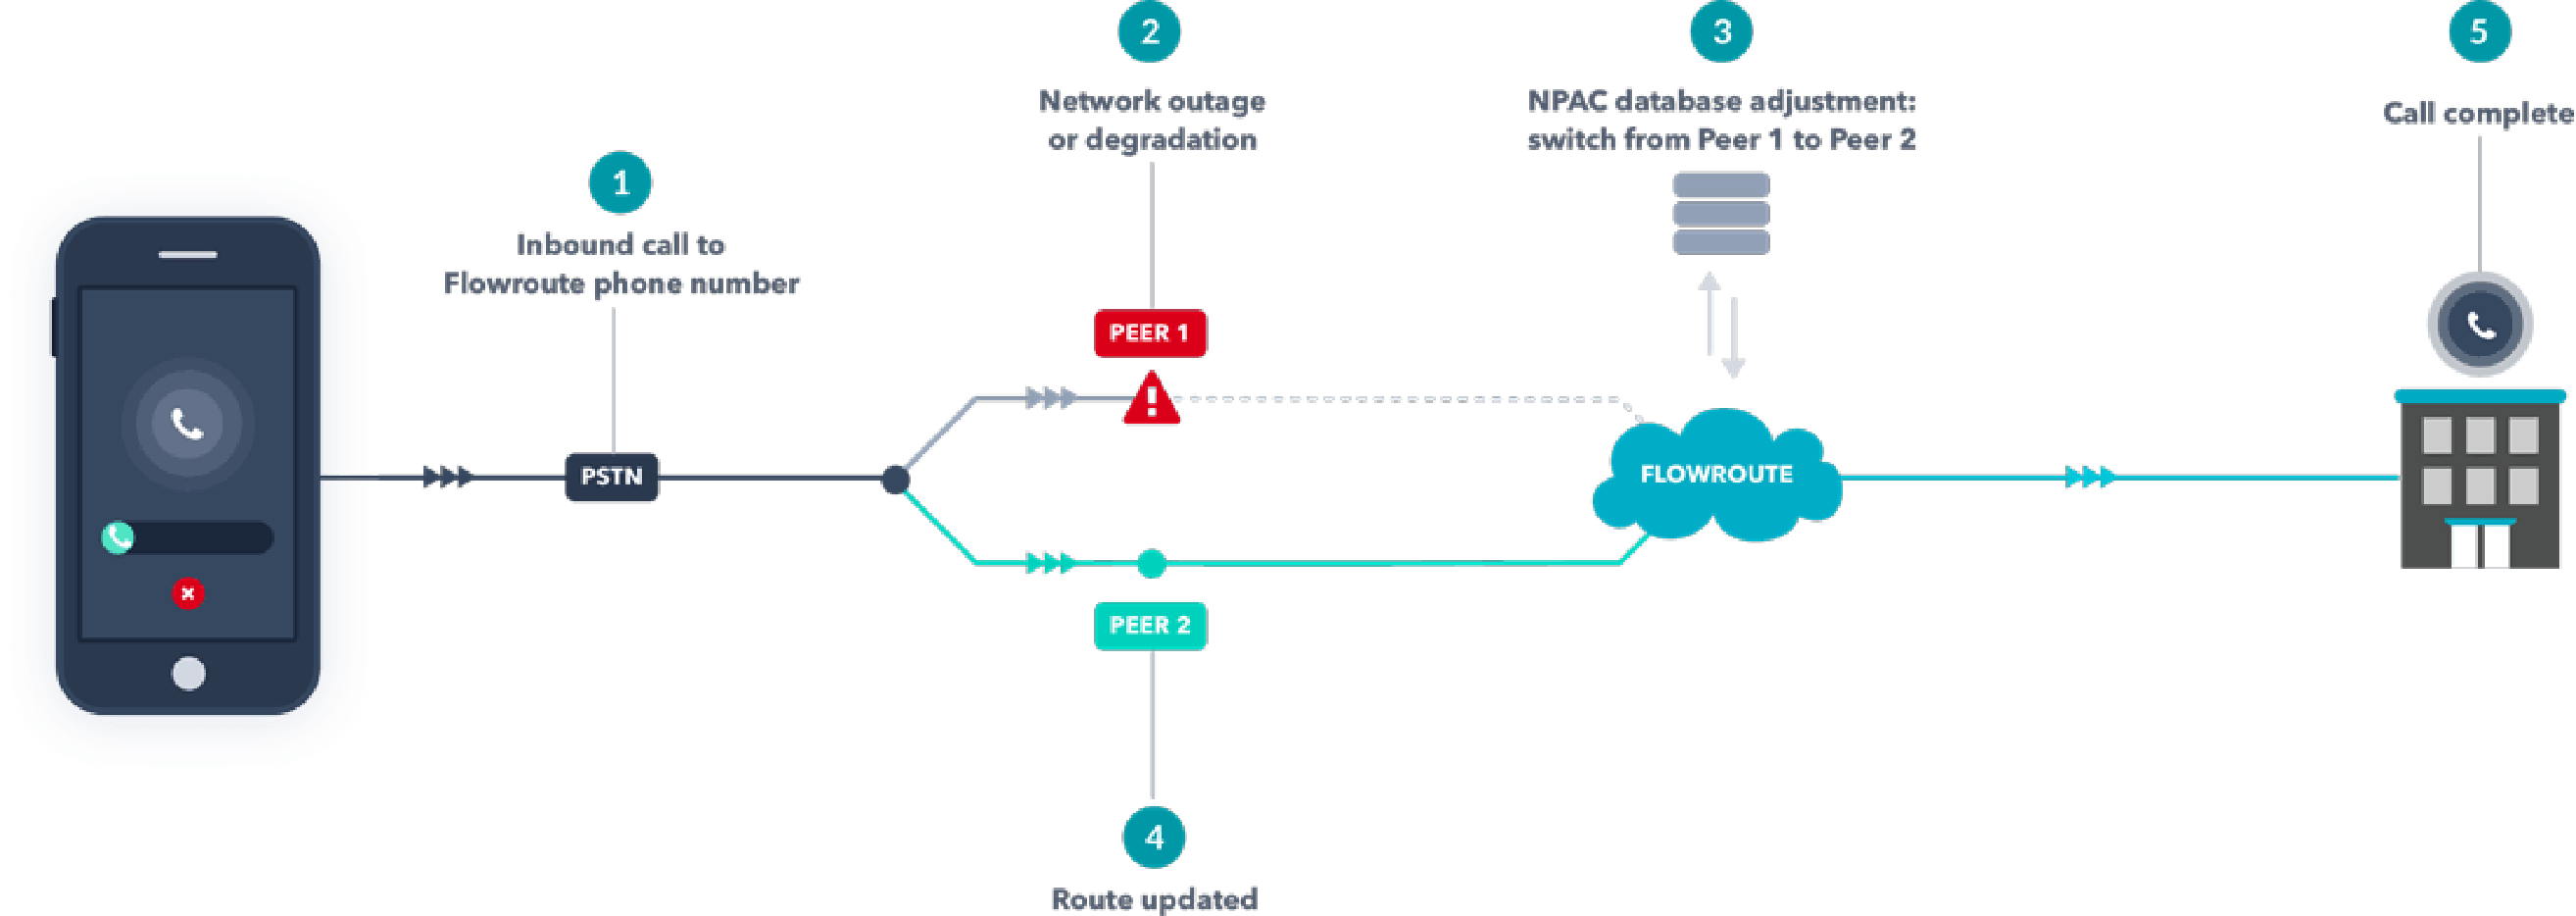 Take Back Control with Flowroute